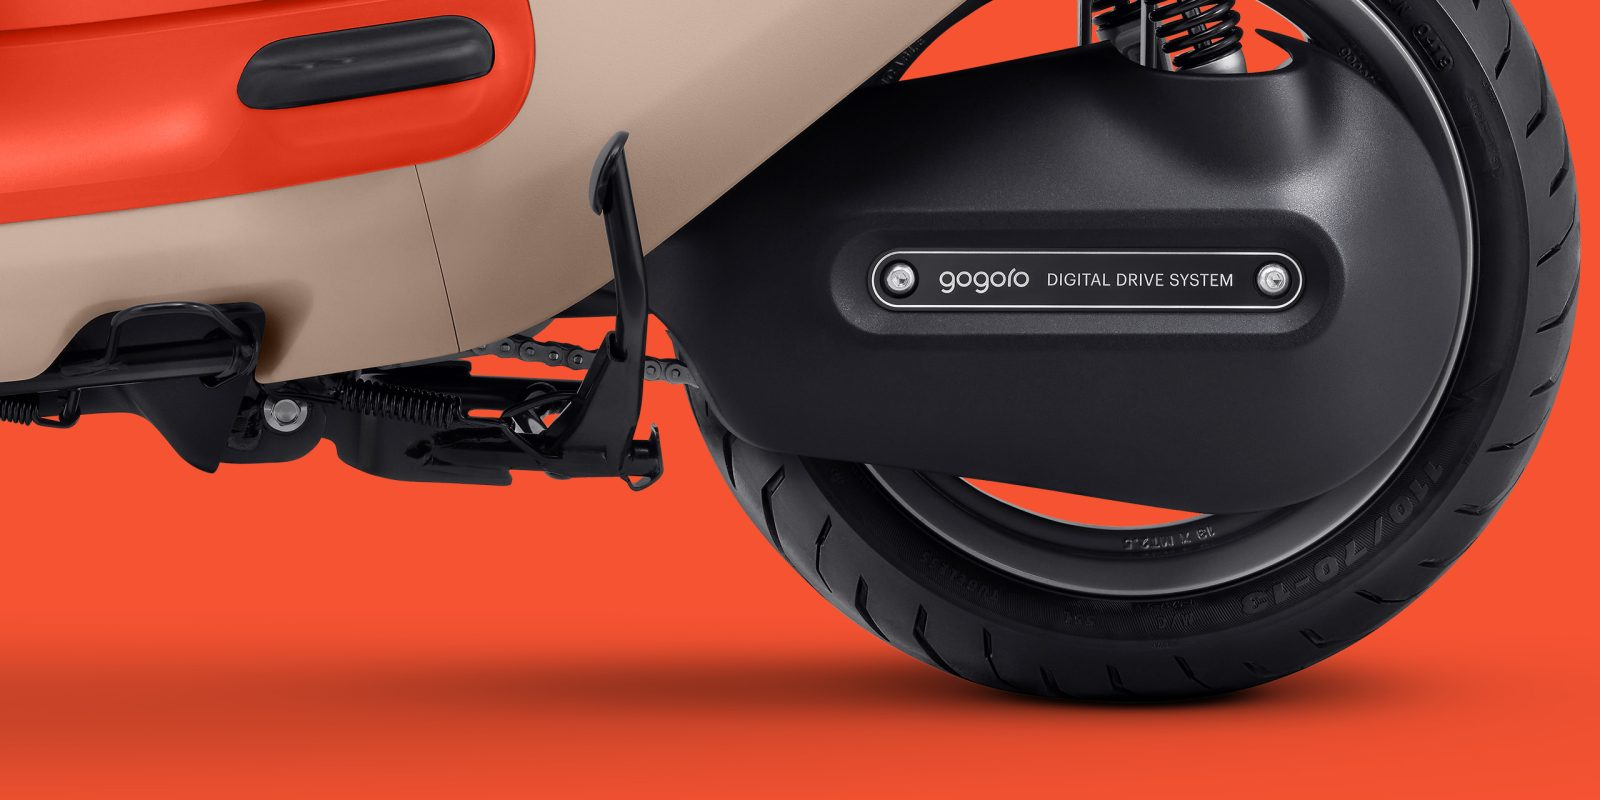 Gogoro's new 170 km range electric scooter adds Tesla-style battery